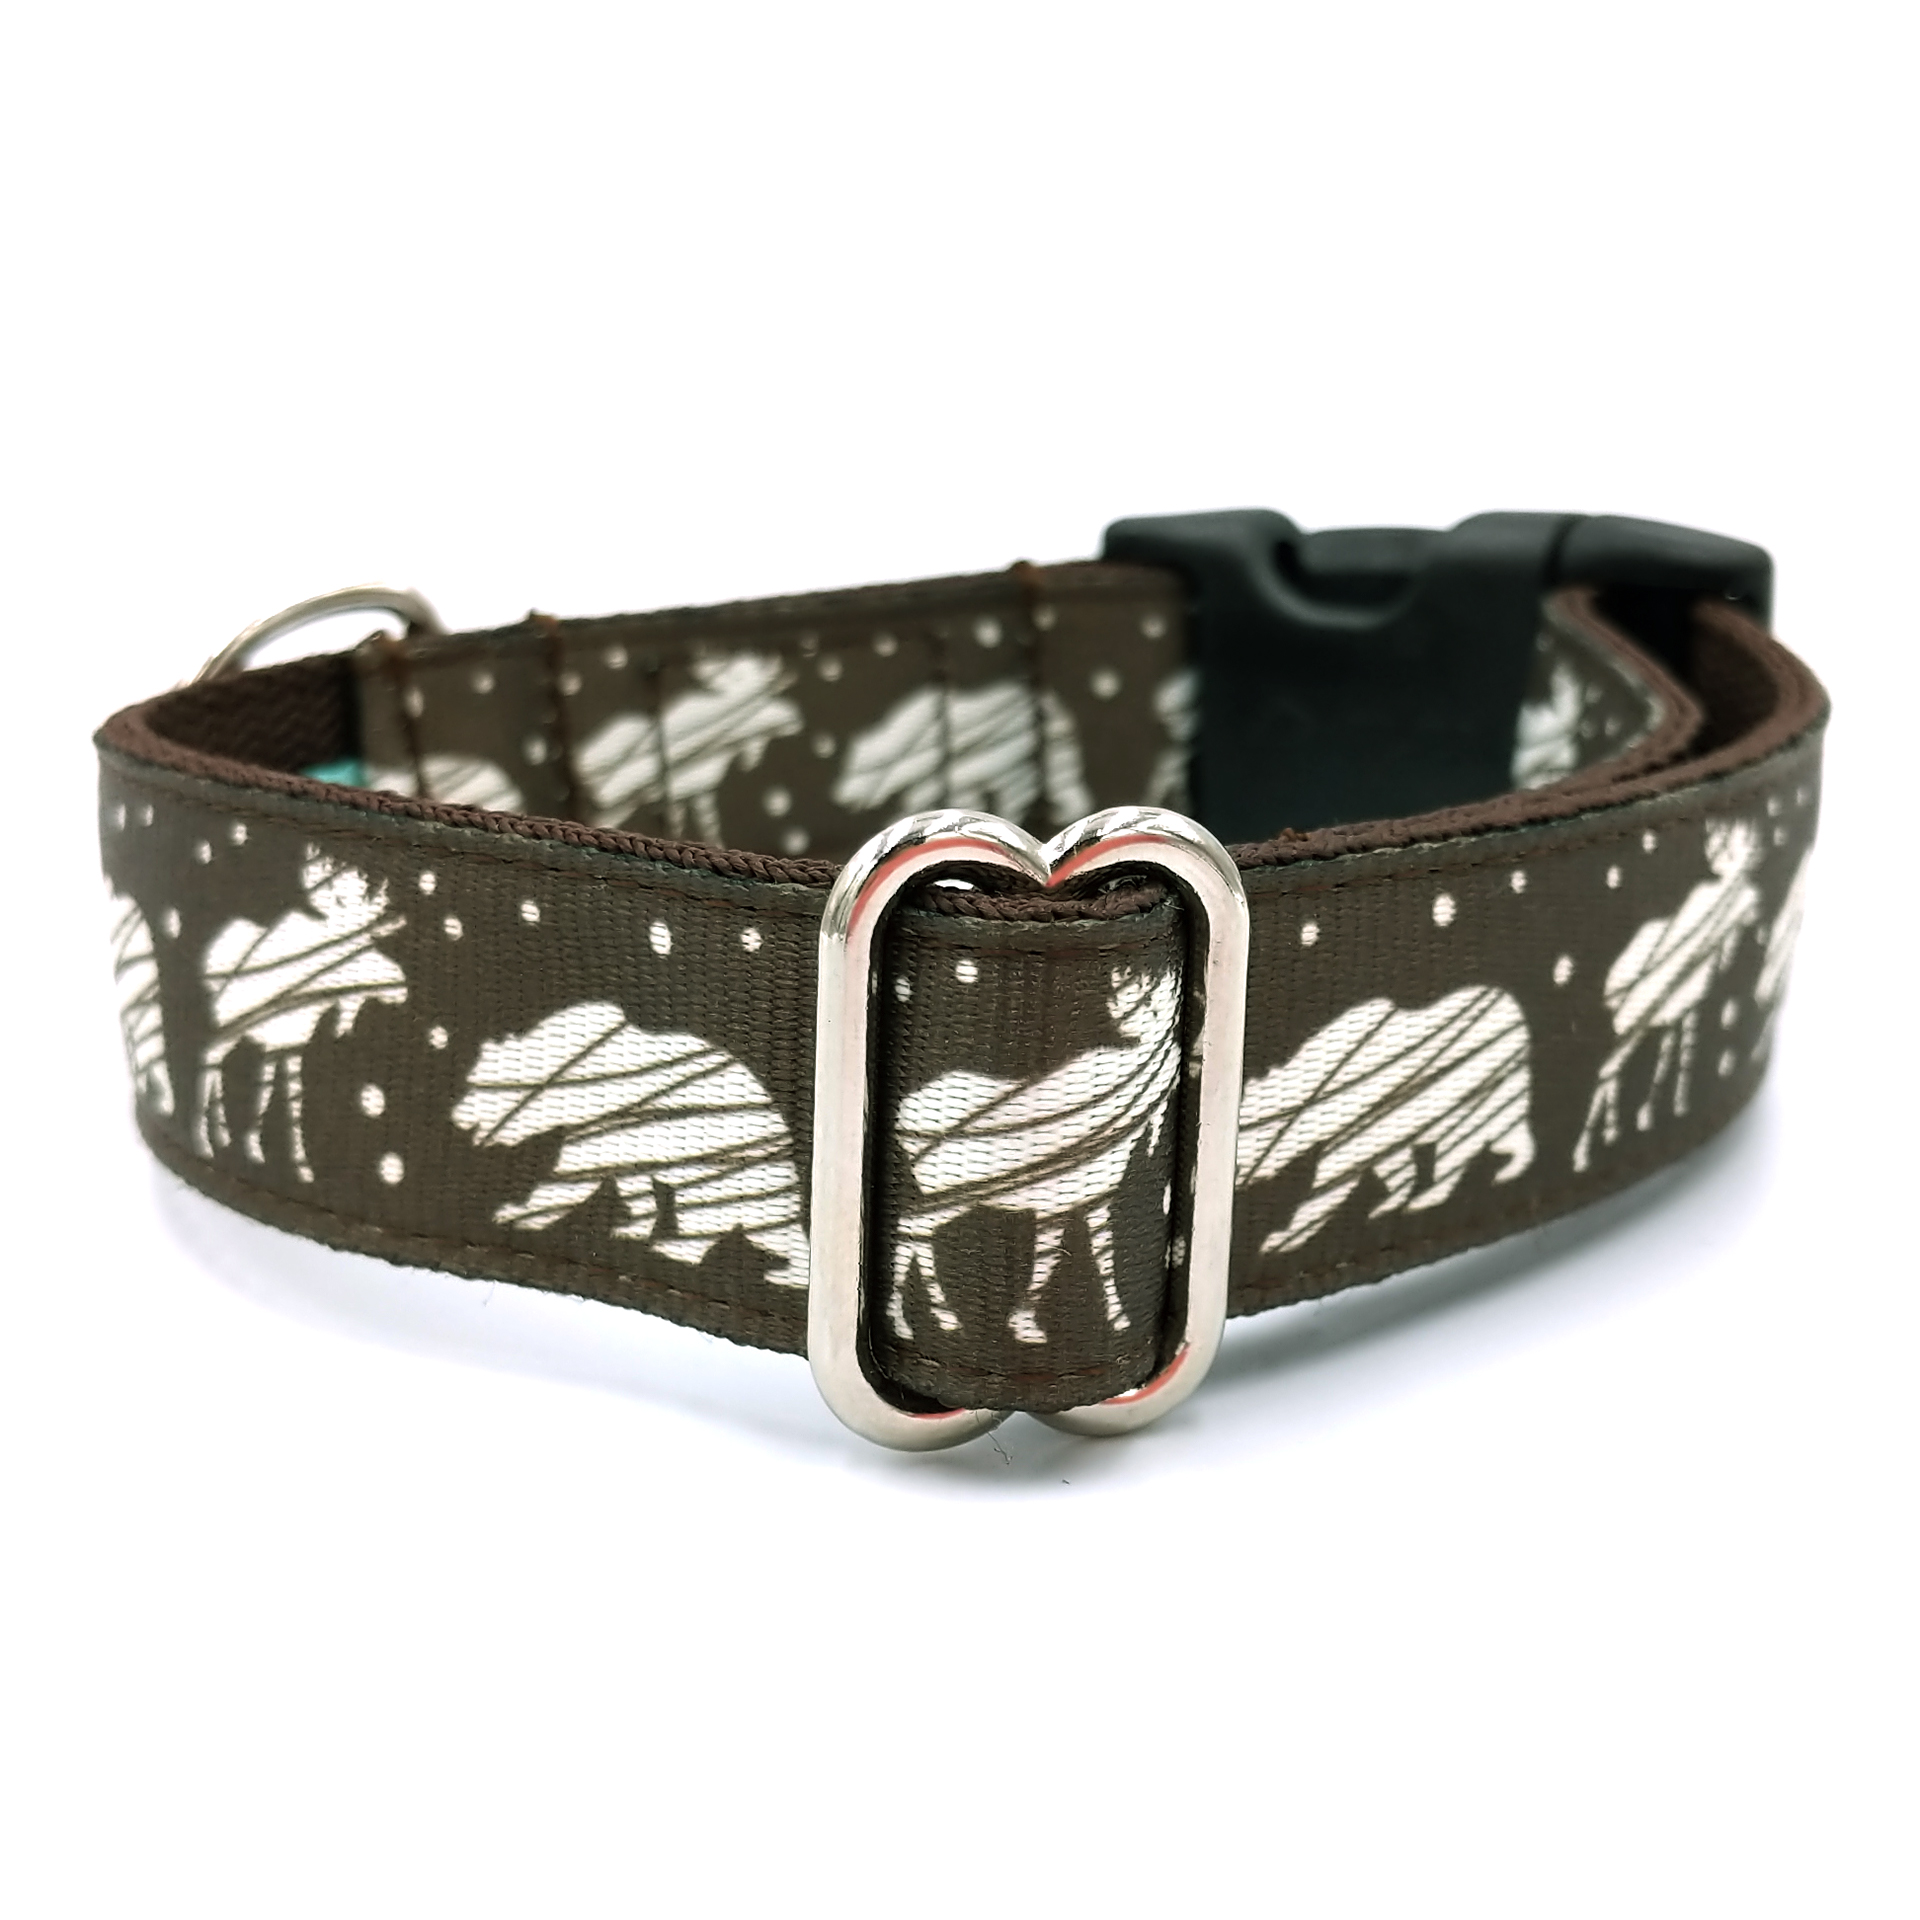 Tundra dog collar